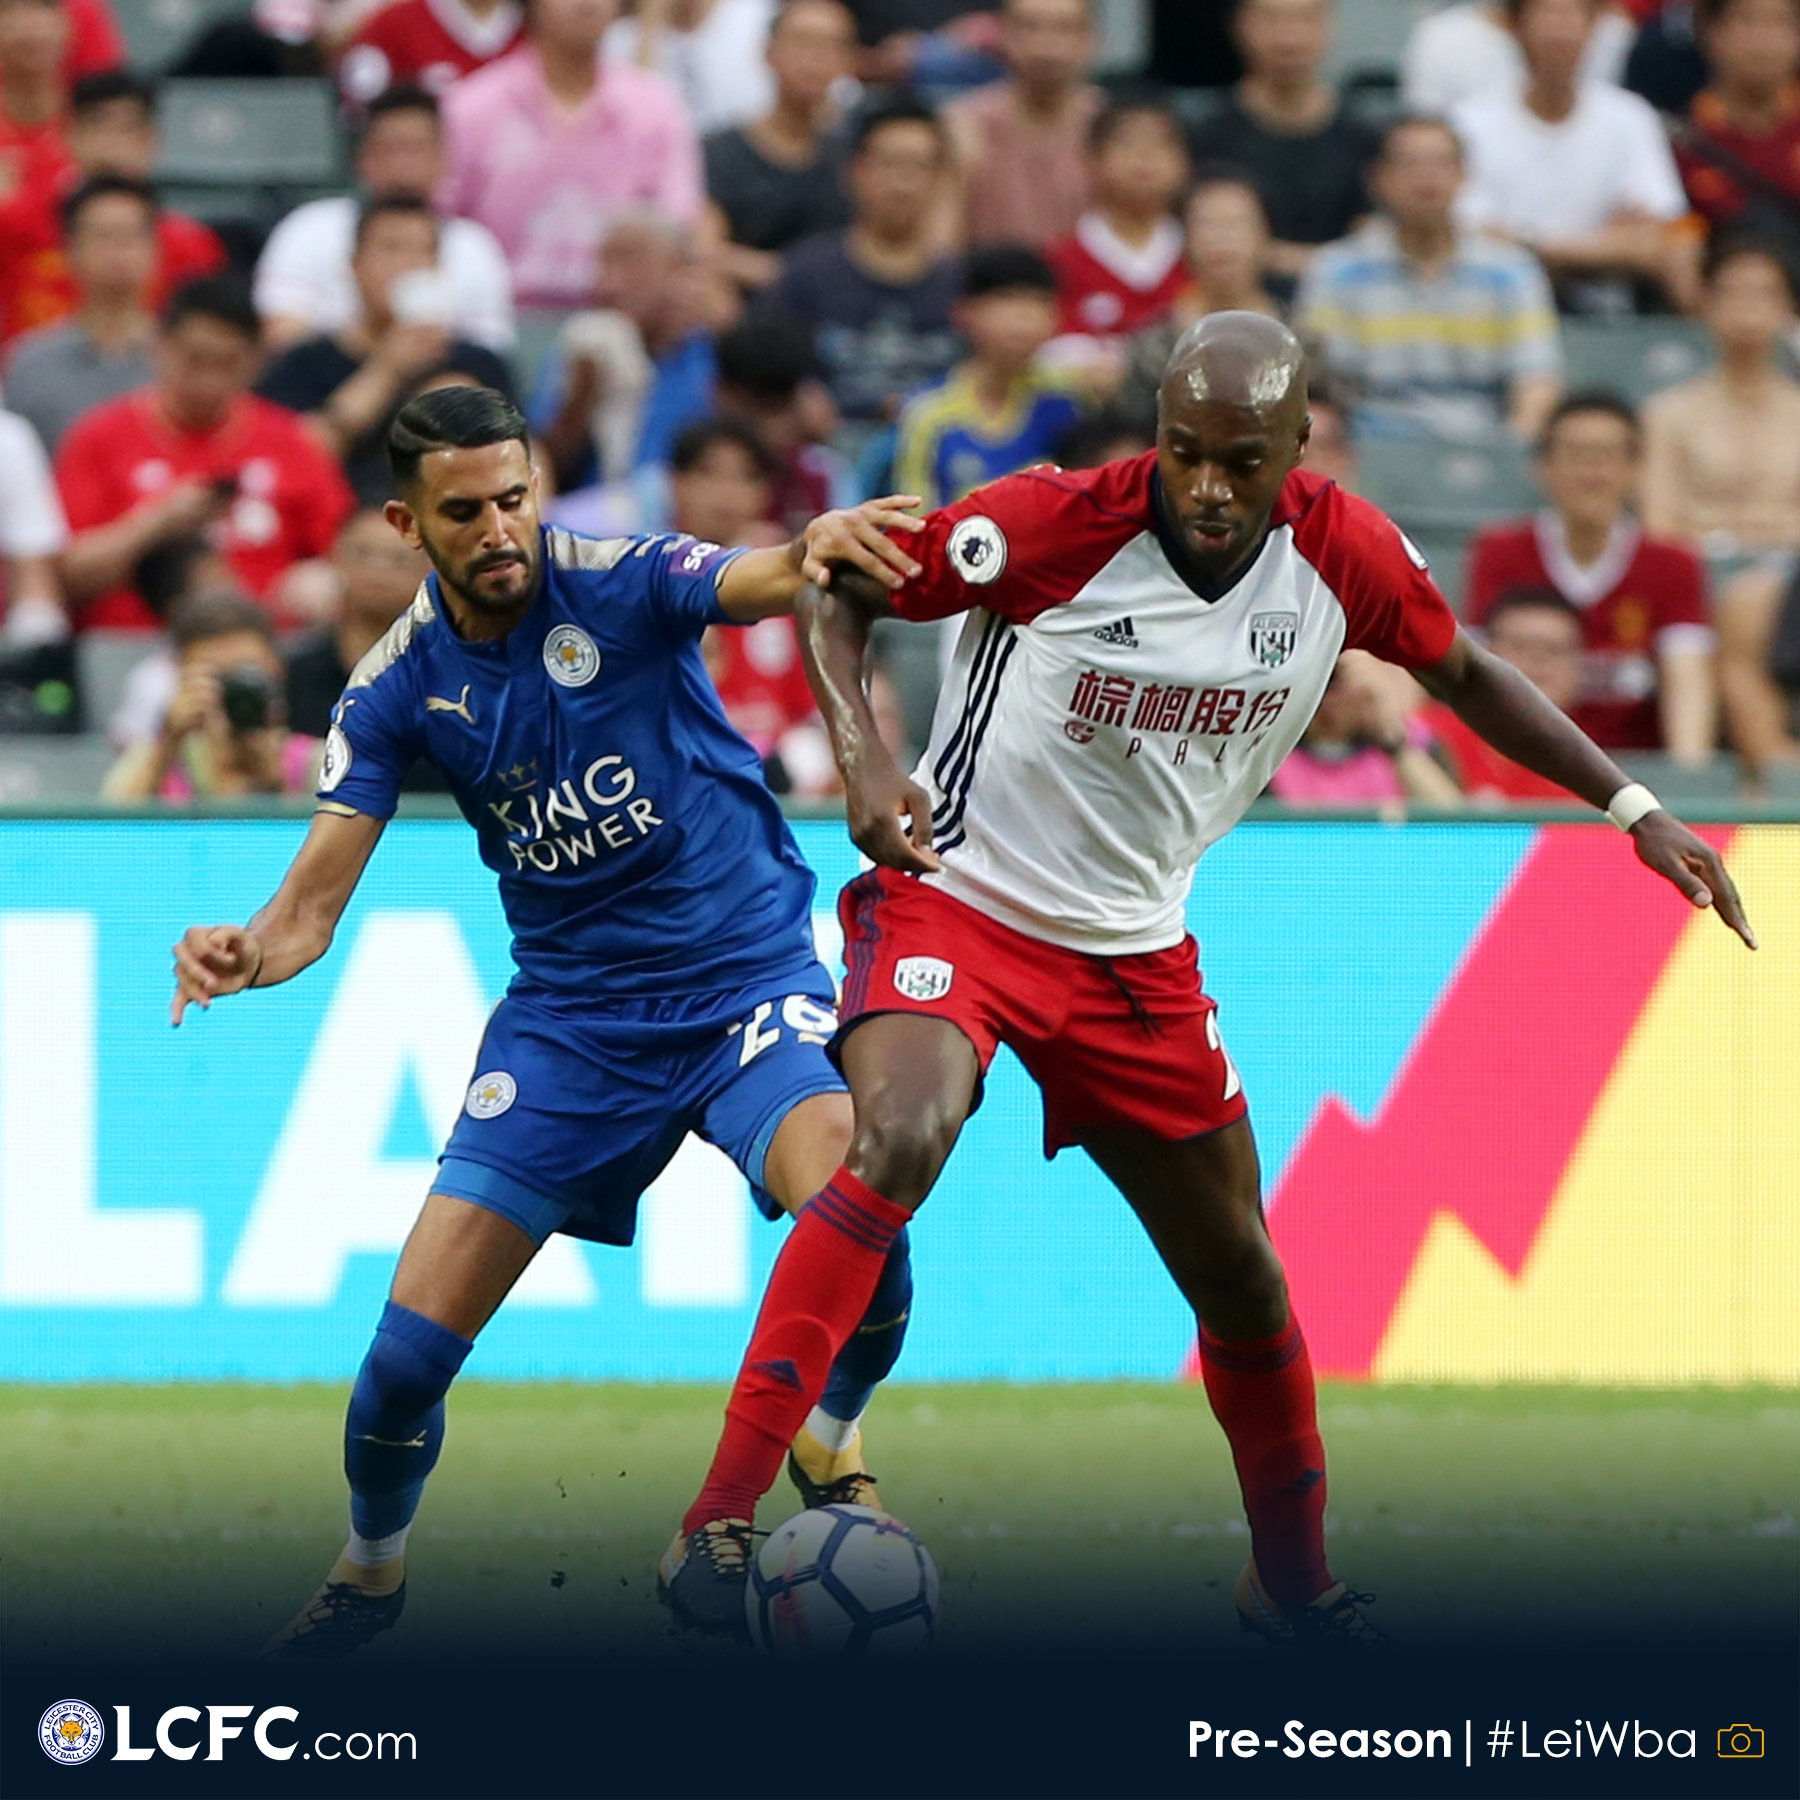 Ndidi, Mahrez Star, Musa Benched As Leicester Edge West Brom